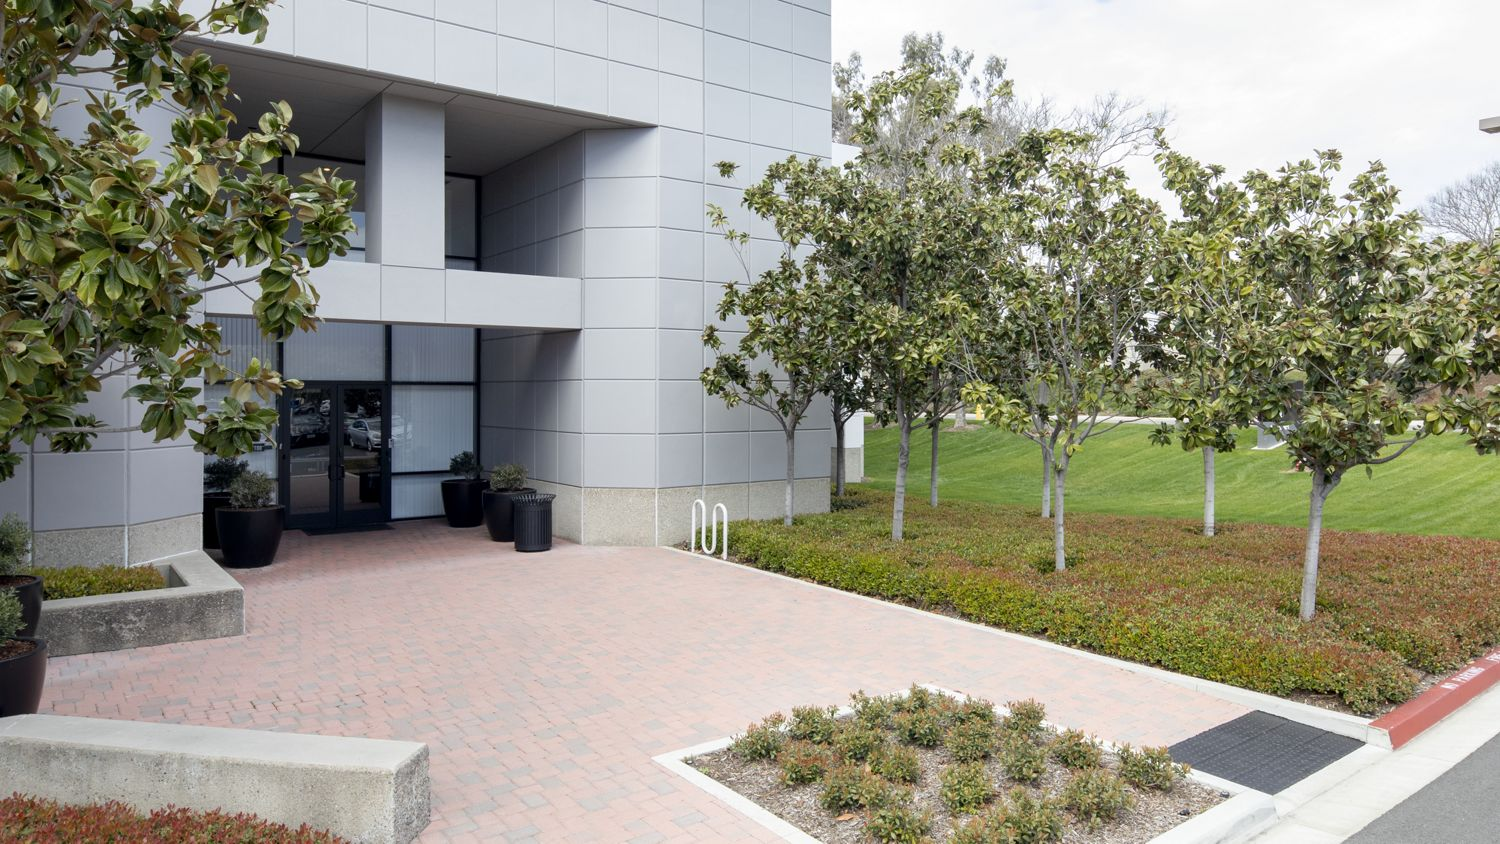 Before reinvestment photography of Bake Technology Park - 6 Cromwell in Irvine, CA